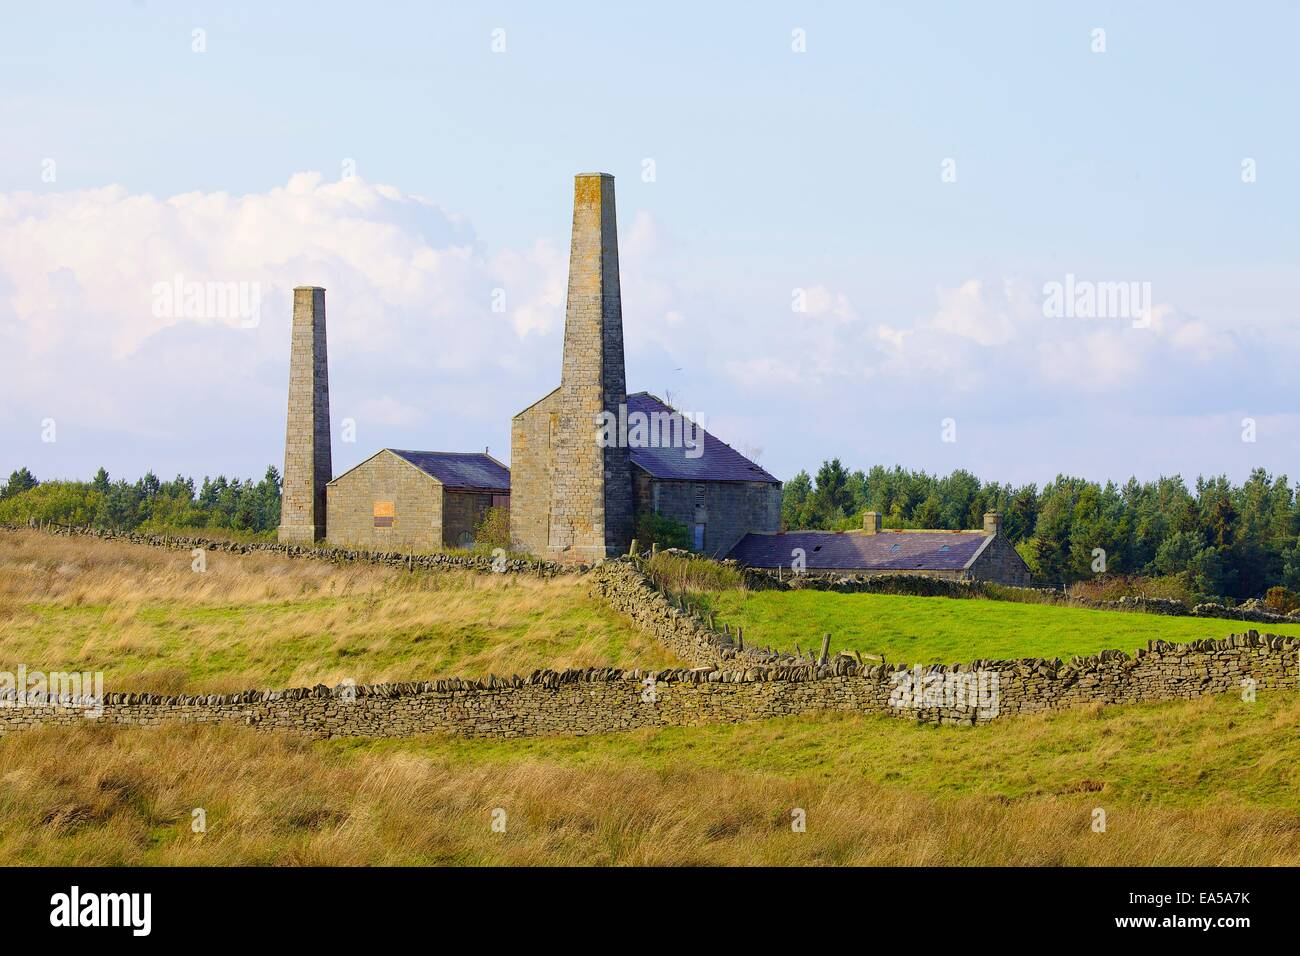 Old Lead Mining Chimneys and buildings, Stublick Farm, Stublick Moor, Allendale Town, Northumberland, England, UK. - Stock Image